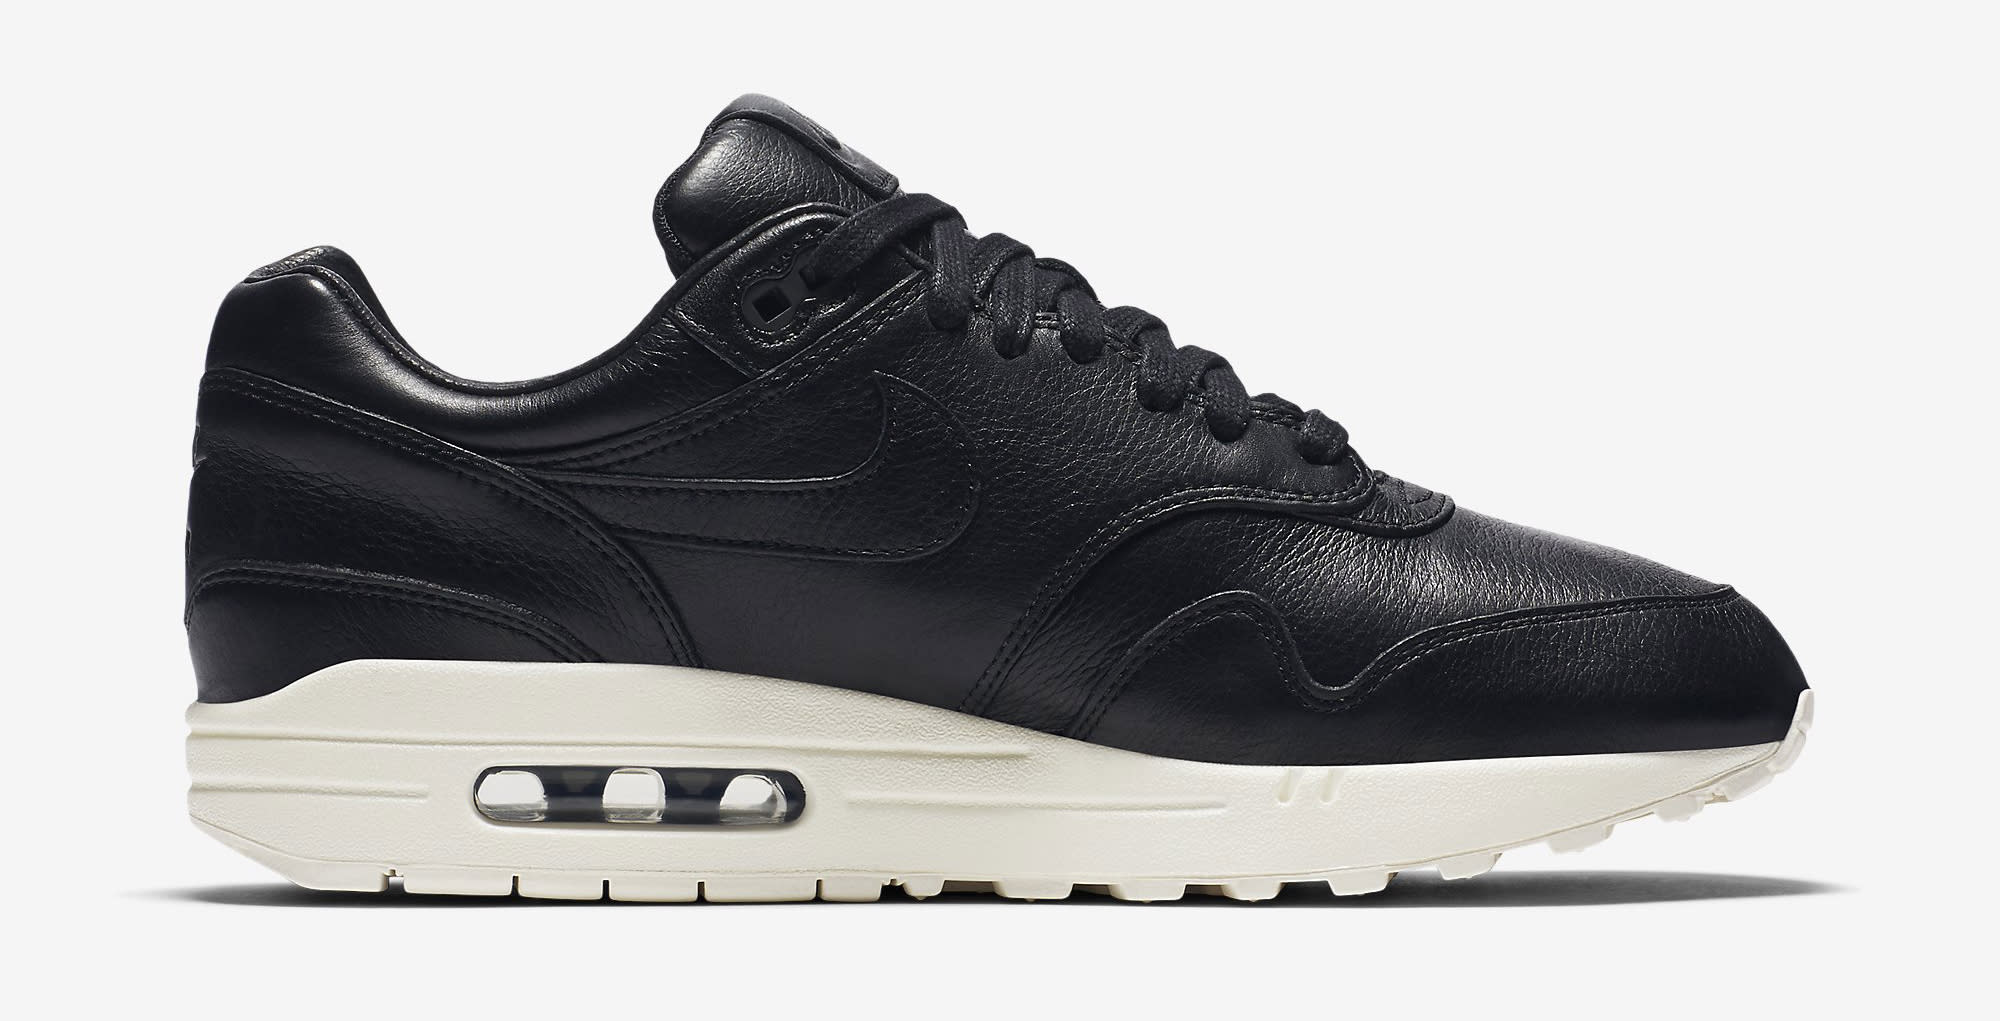 Pinnacle Nike Air Max 1 Leather Black Sail Blue | Sole Collector